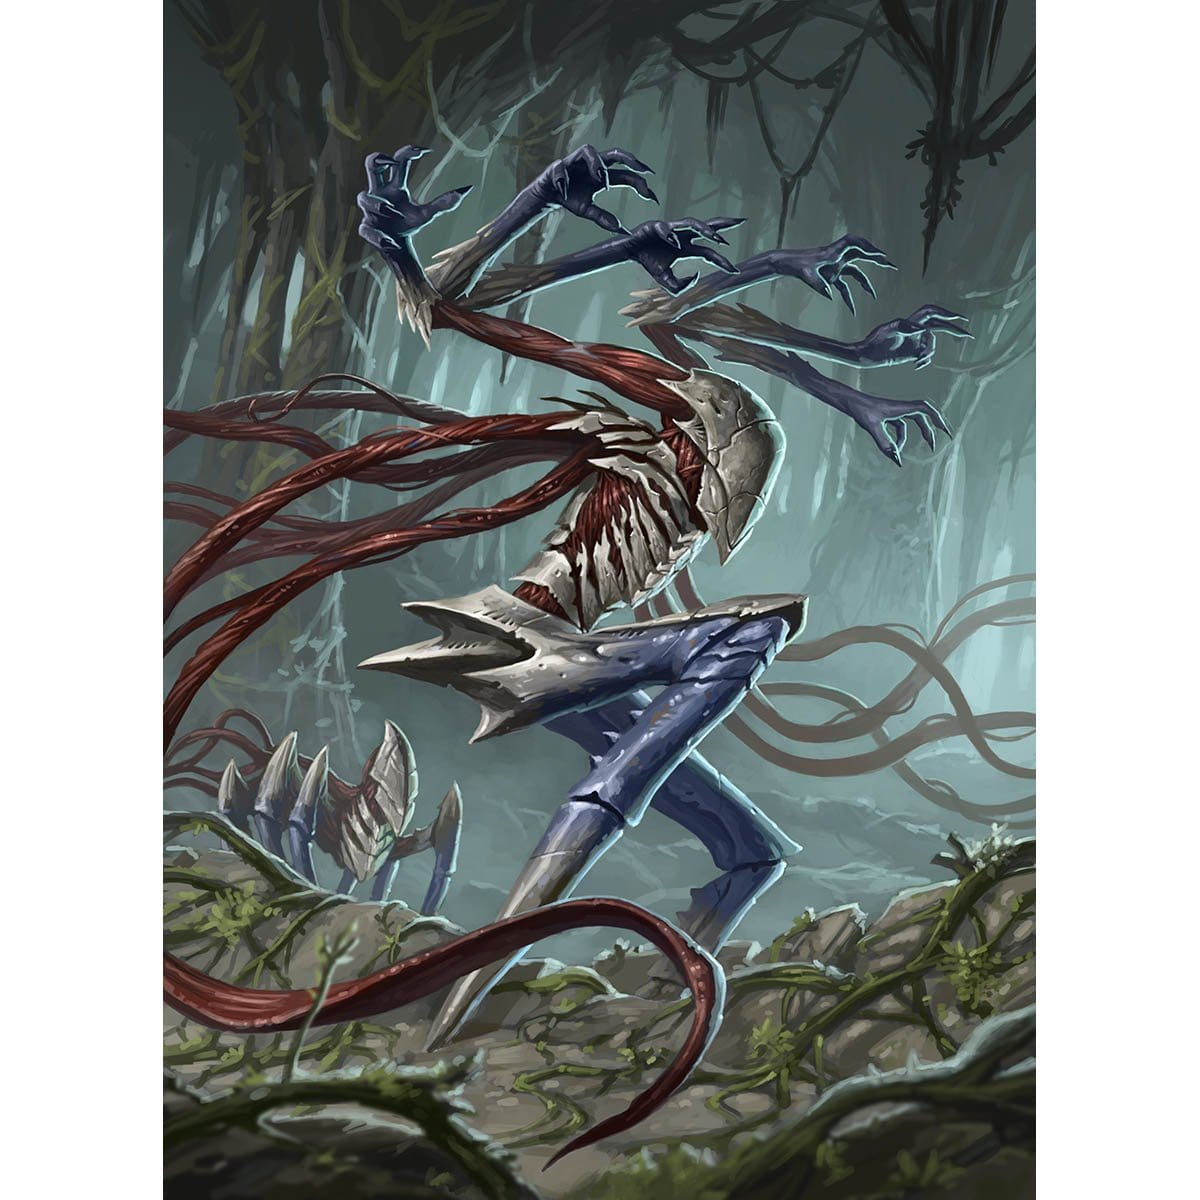 Catacomb Sifter Print - Print - Original Magic Art - Accessories for Magic the Gathering and other card games